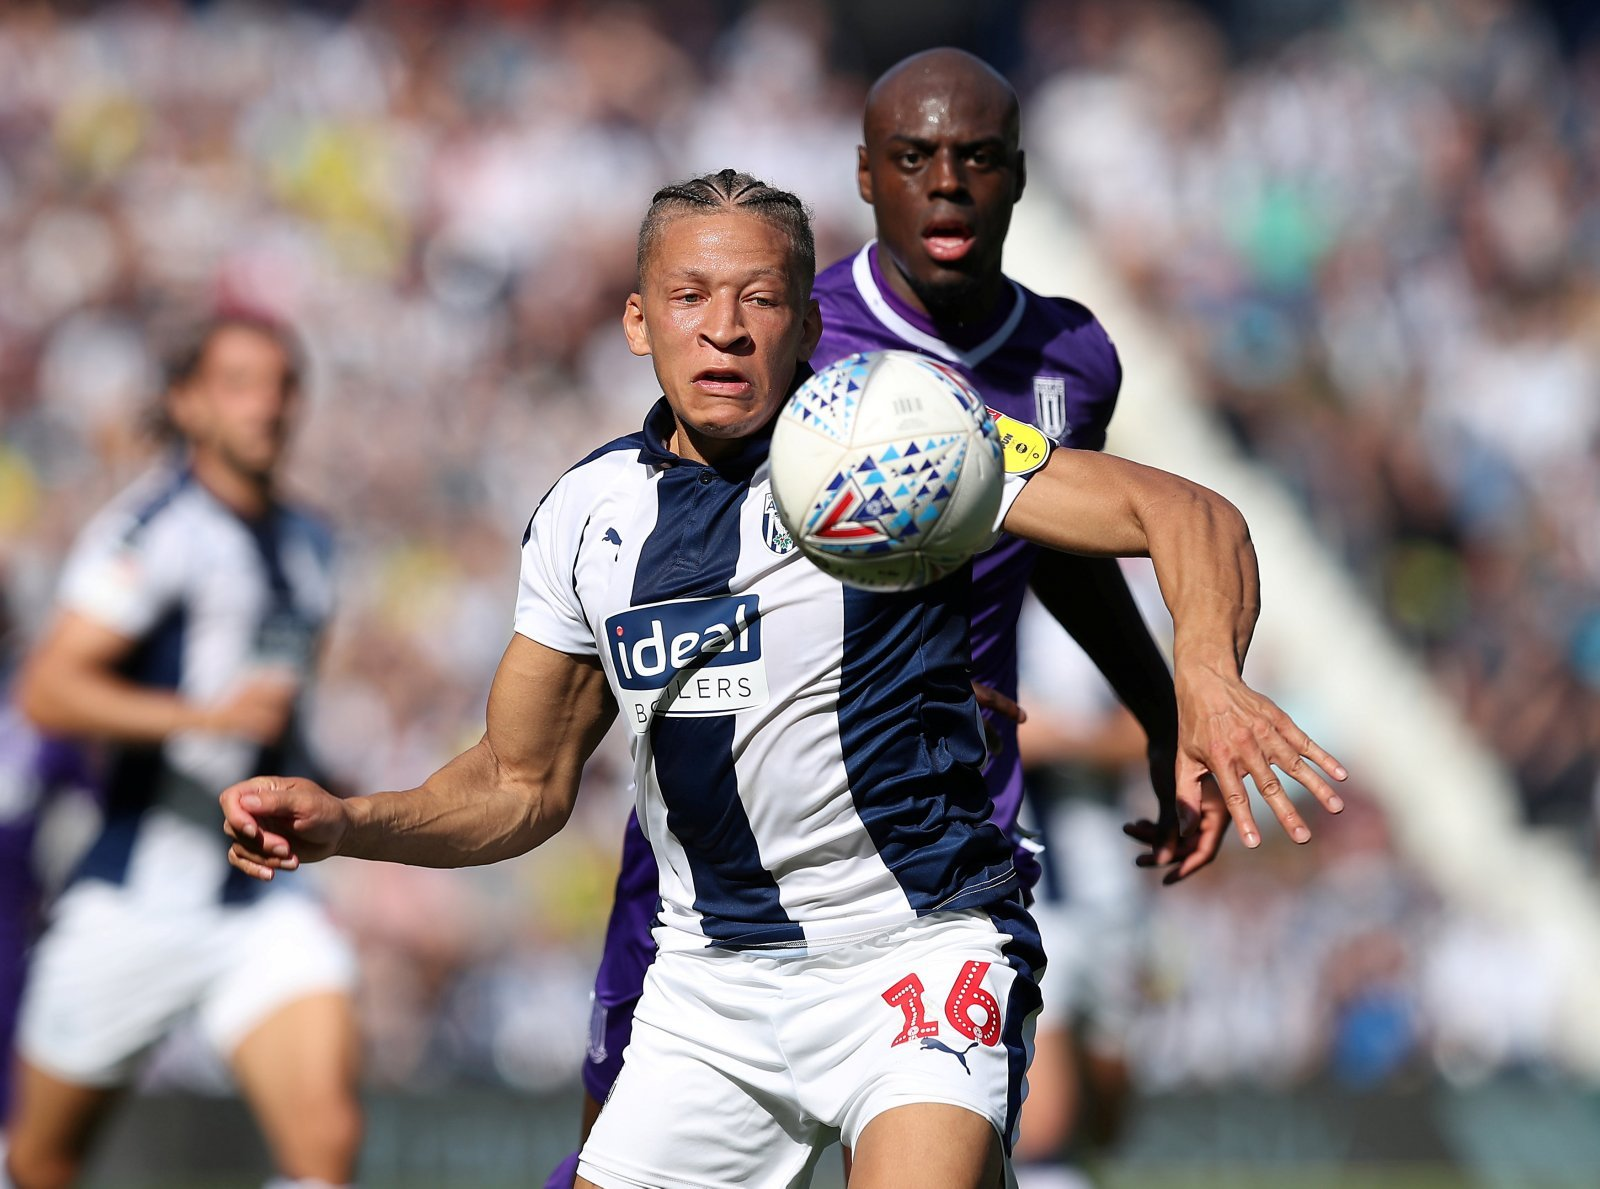 West Brom fans are pinning their hopes on the excellent Dwight Gayle